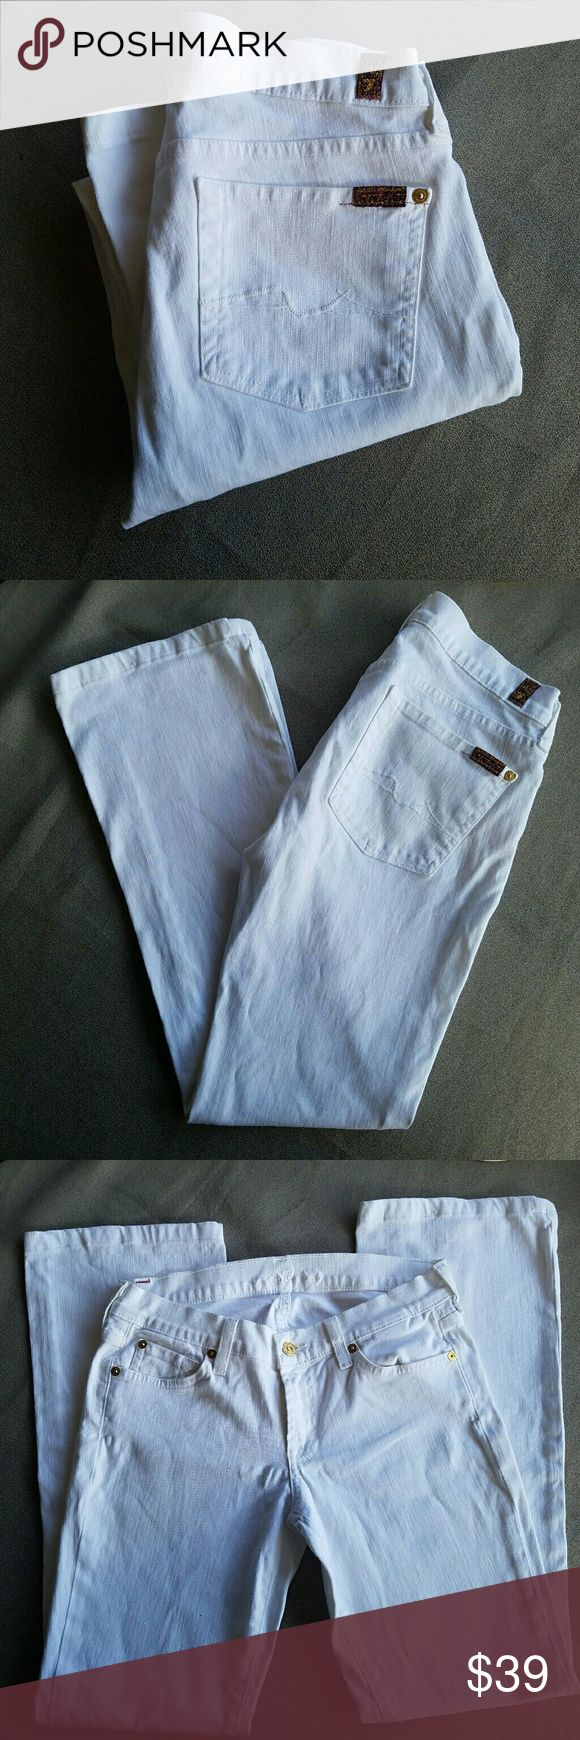 7 for All Mankind White Bootcut Jeans Outer-seam 37.5 in Inseam 30 in Waist 14.8 in Excellent condition  Feel free to ask me any additional questions. Reasonable offers are considered. No trades, or modeling. Happy Poshing! 7 For All Mankind Jeans Boot Cut